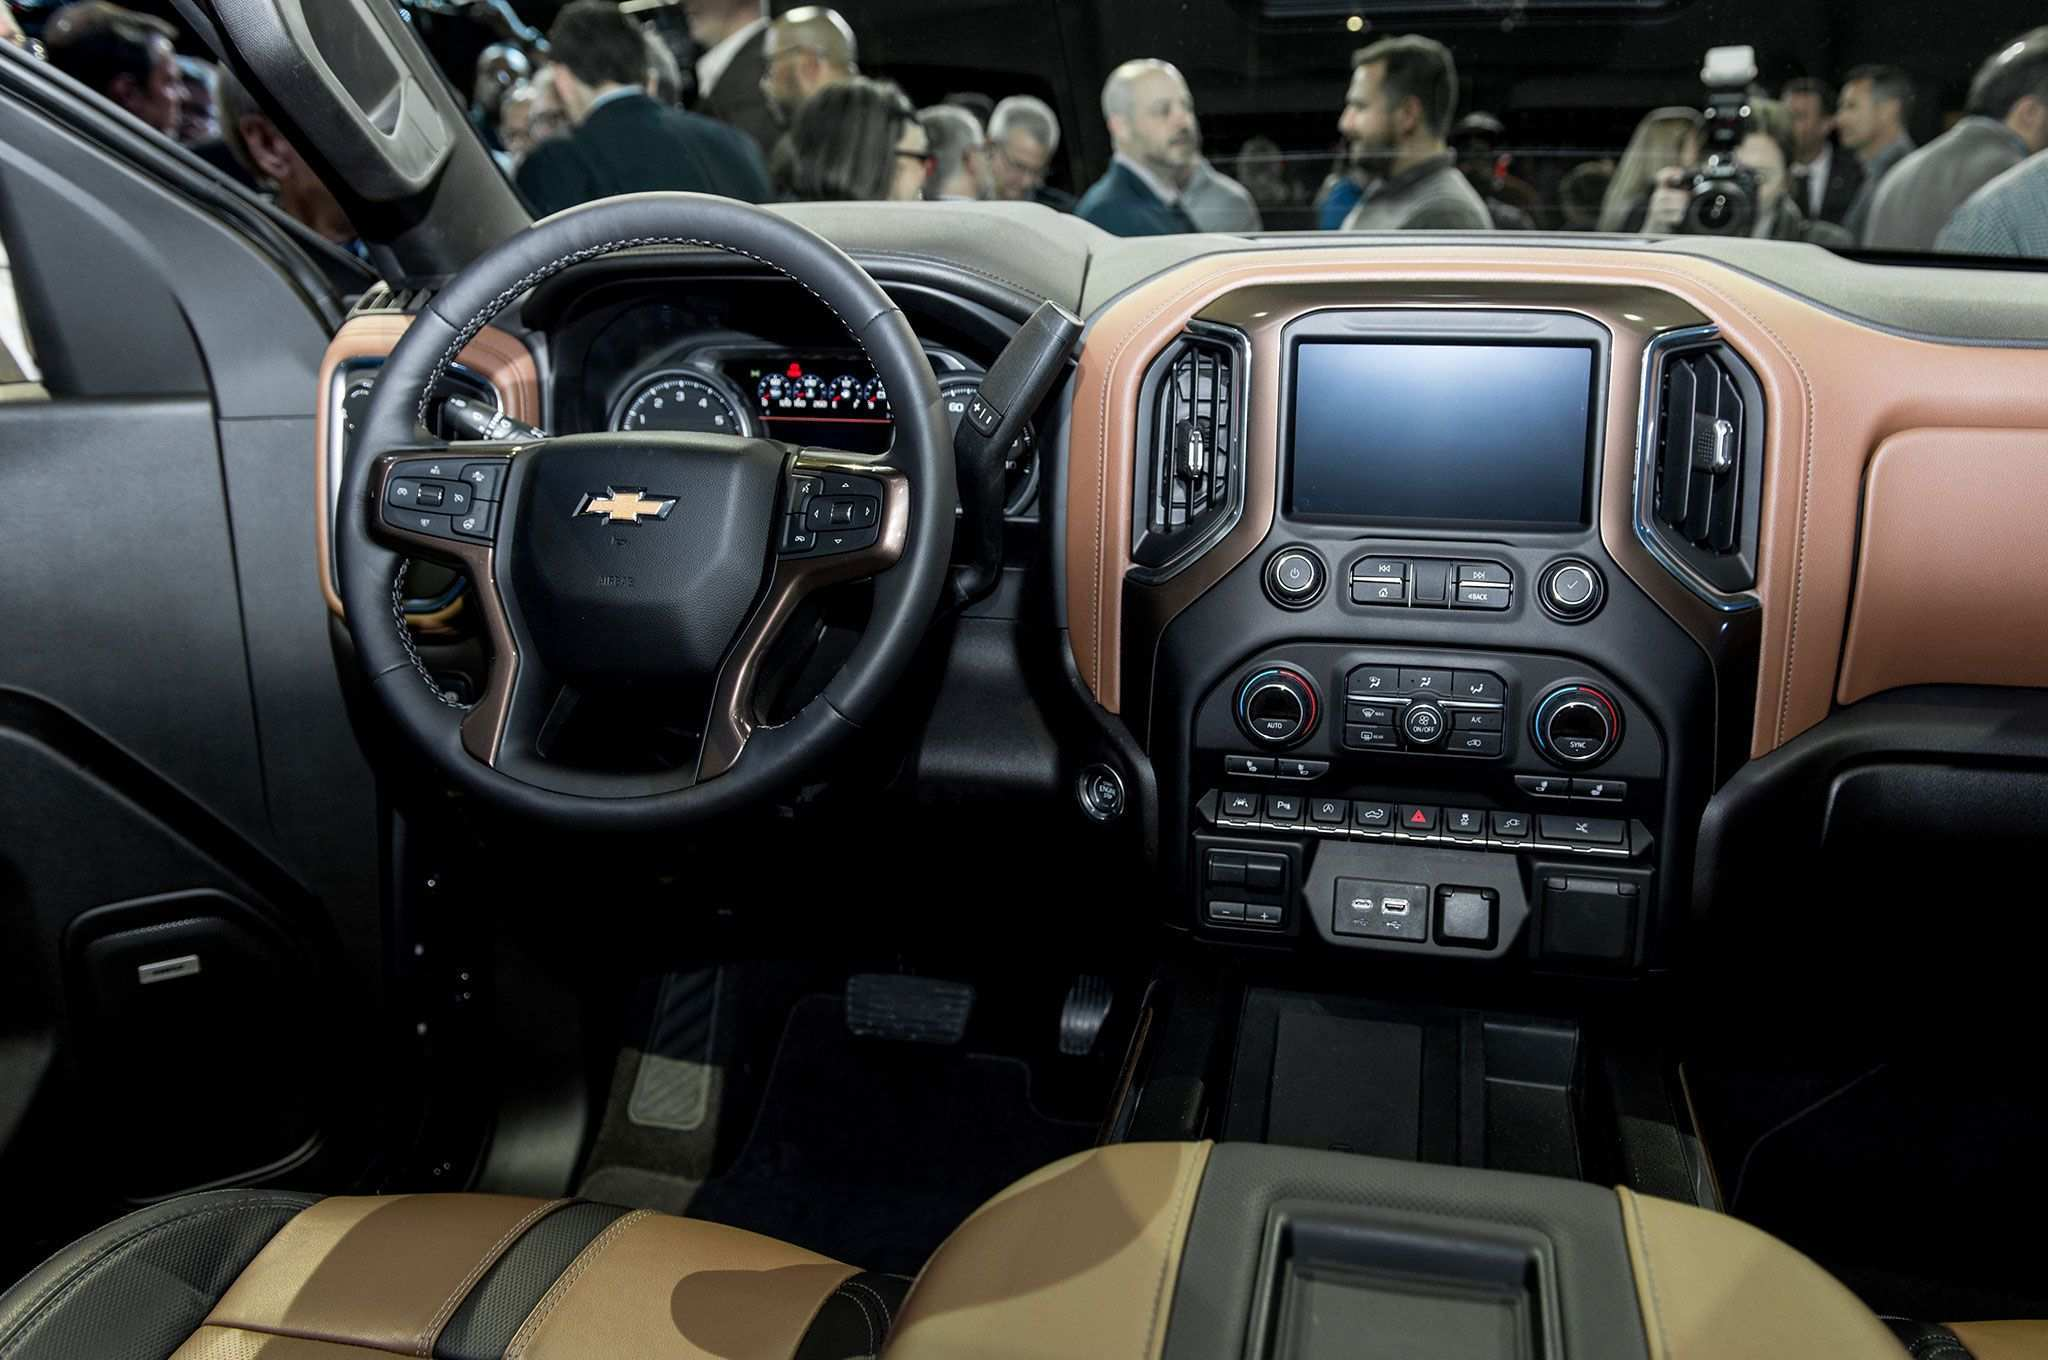 55 Best 2019 Chevrolet High Country Interior Release